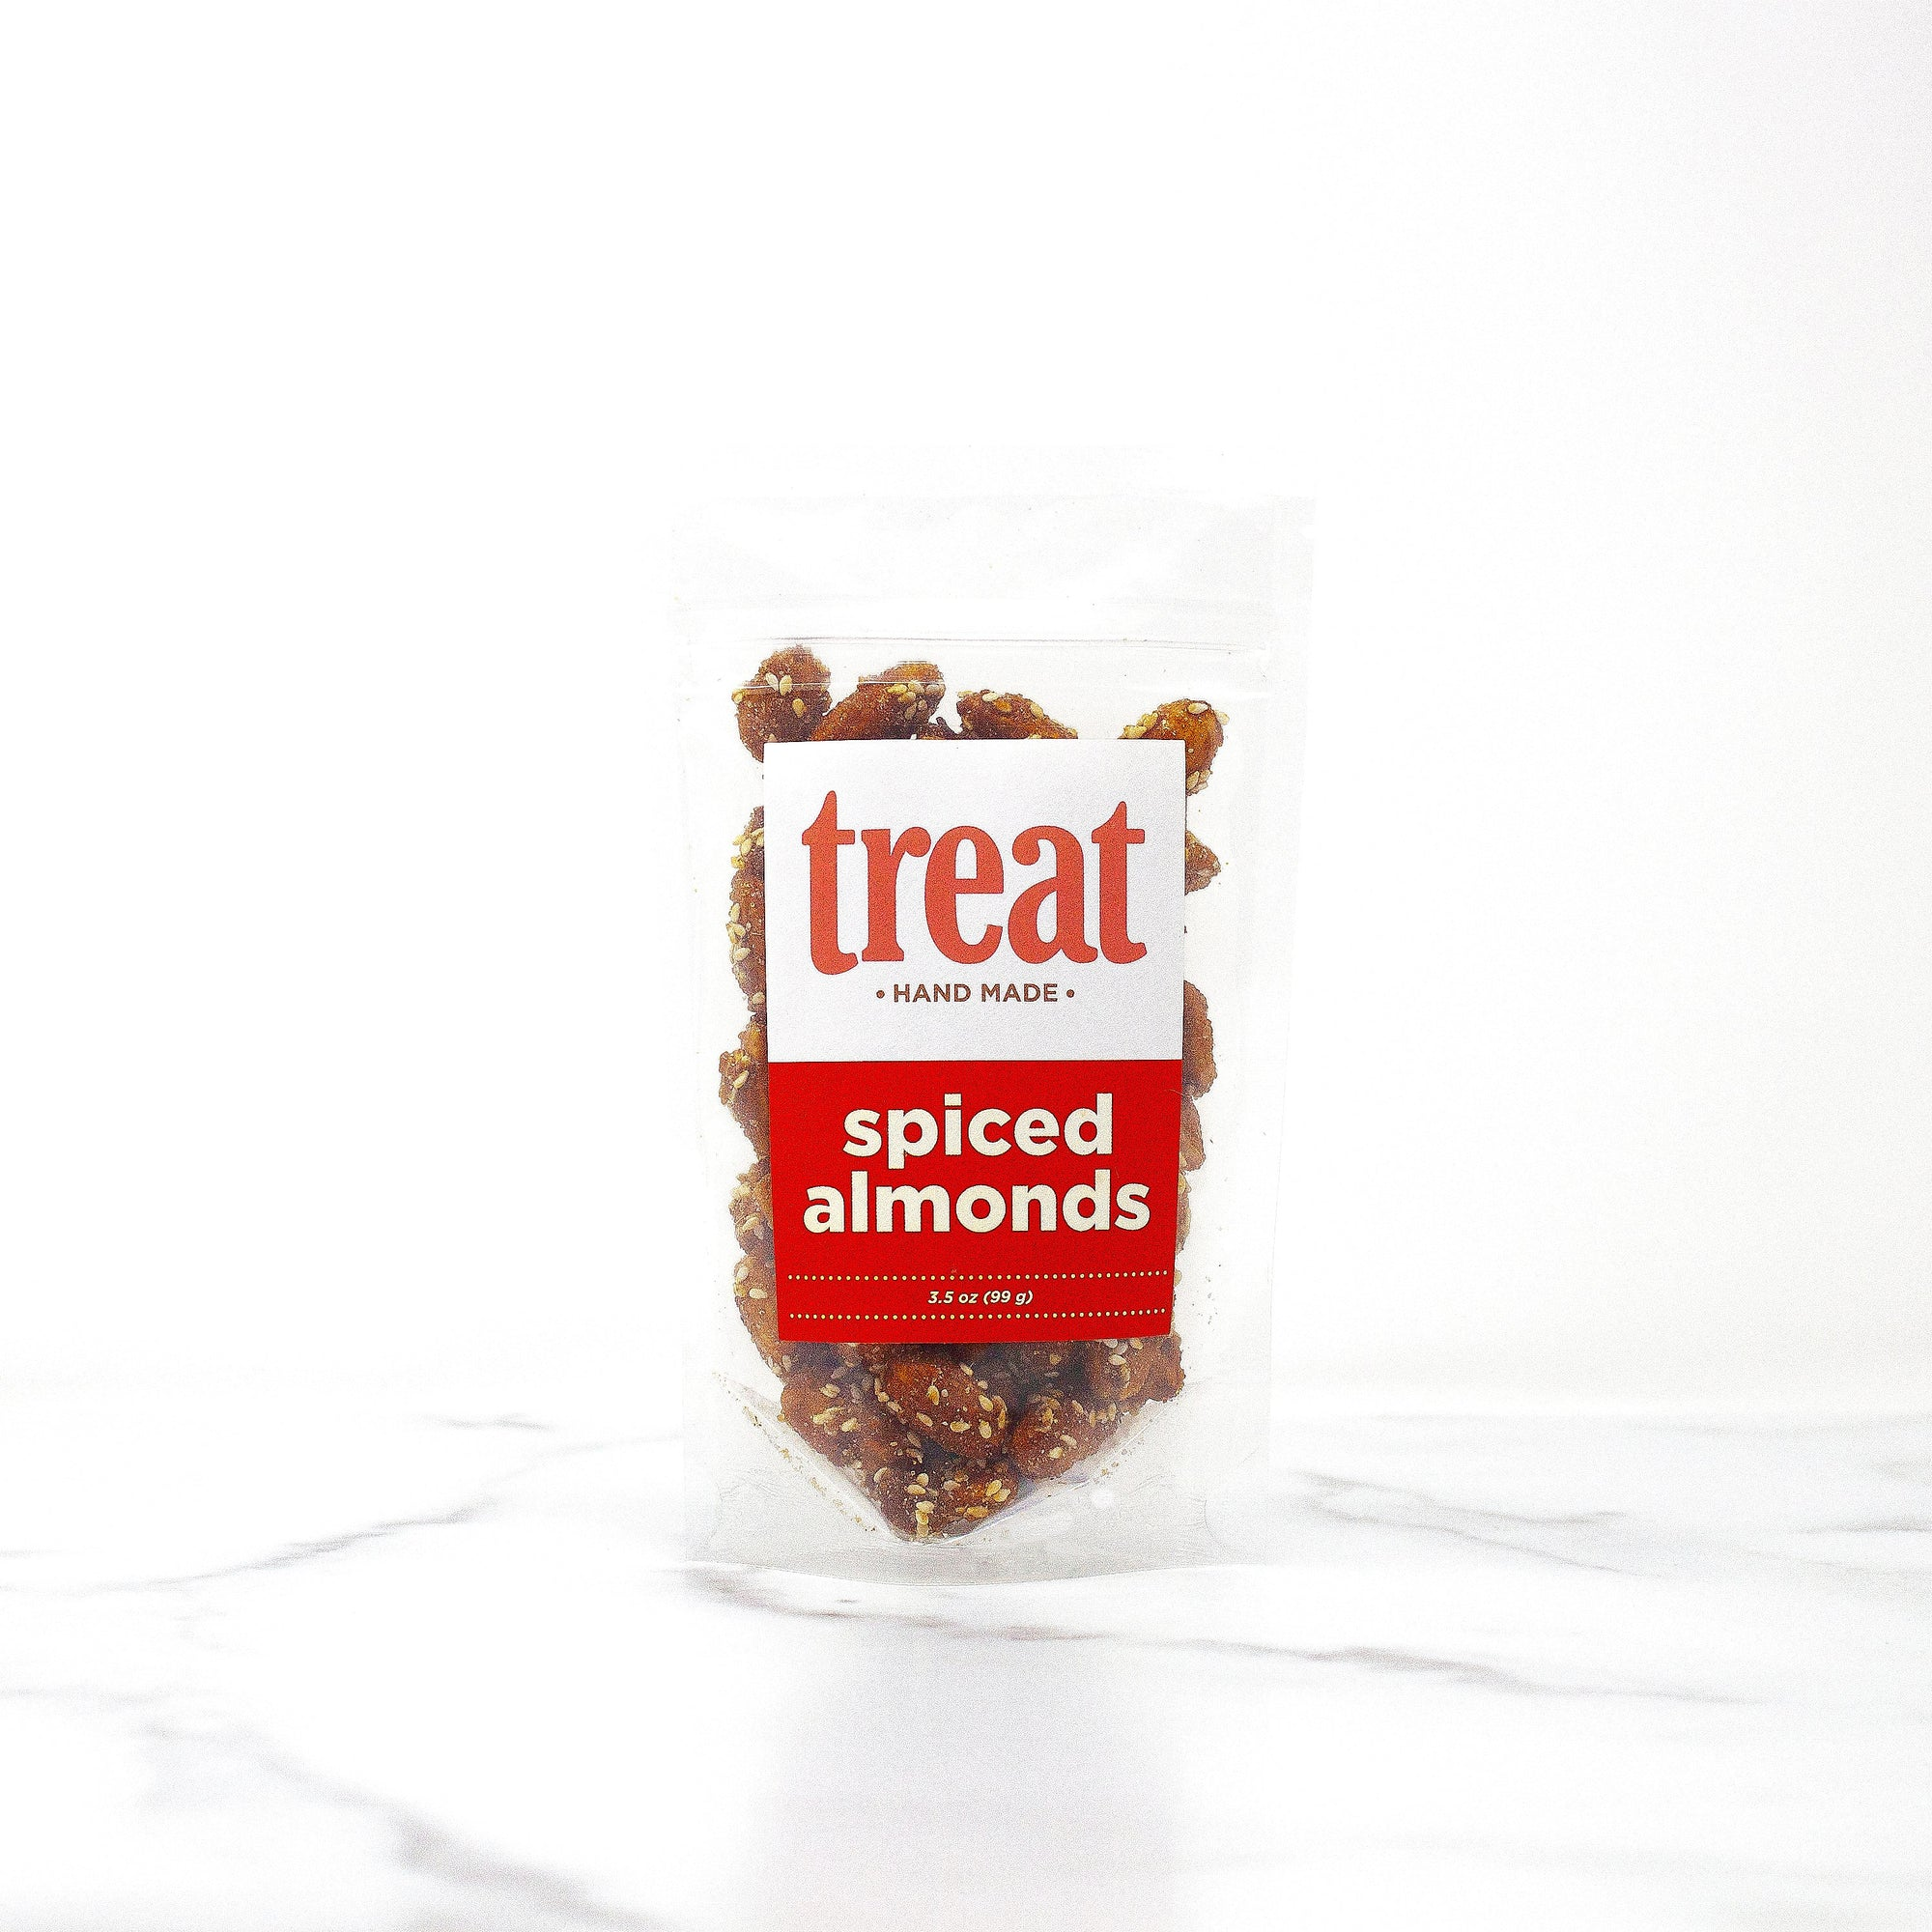 Enjoy this 3 oz bag of spiced almonds from Treat. Made in small batches, our gourmet spiced almonds explode with flavor and are the perfect gift for any season.